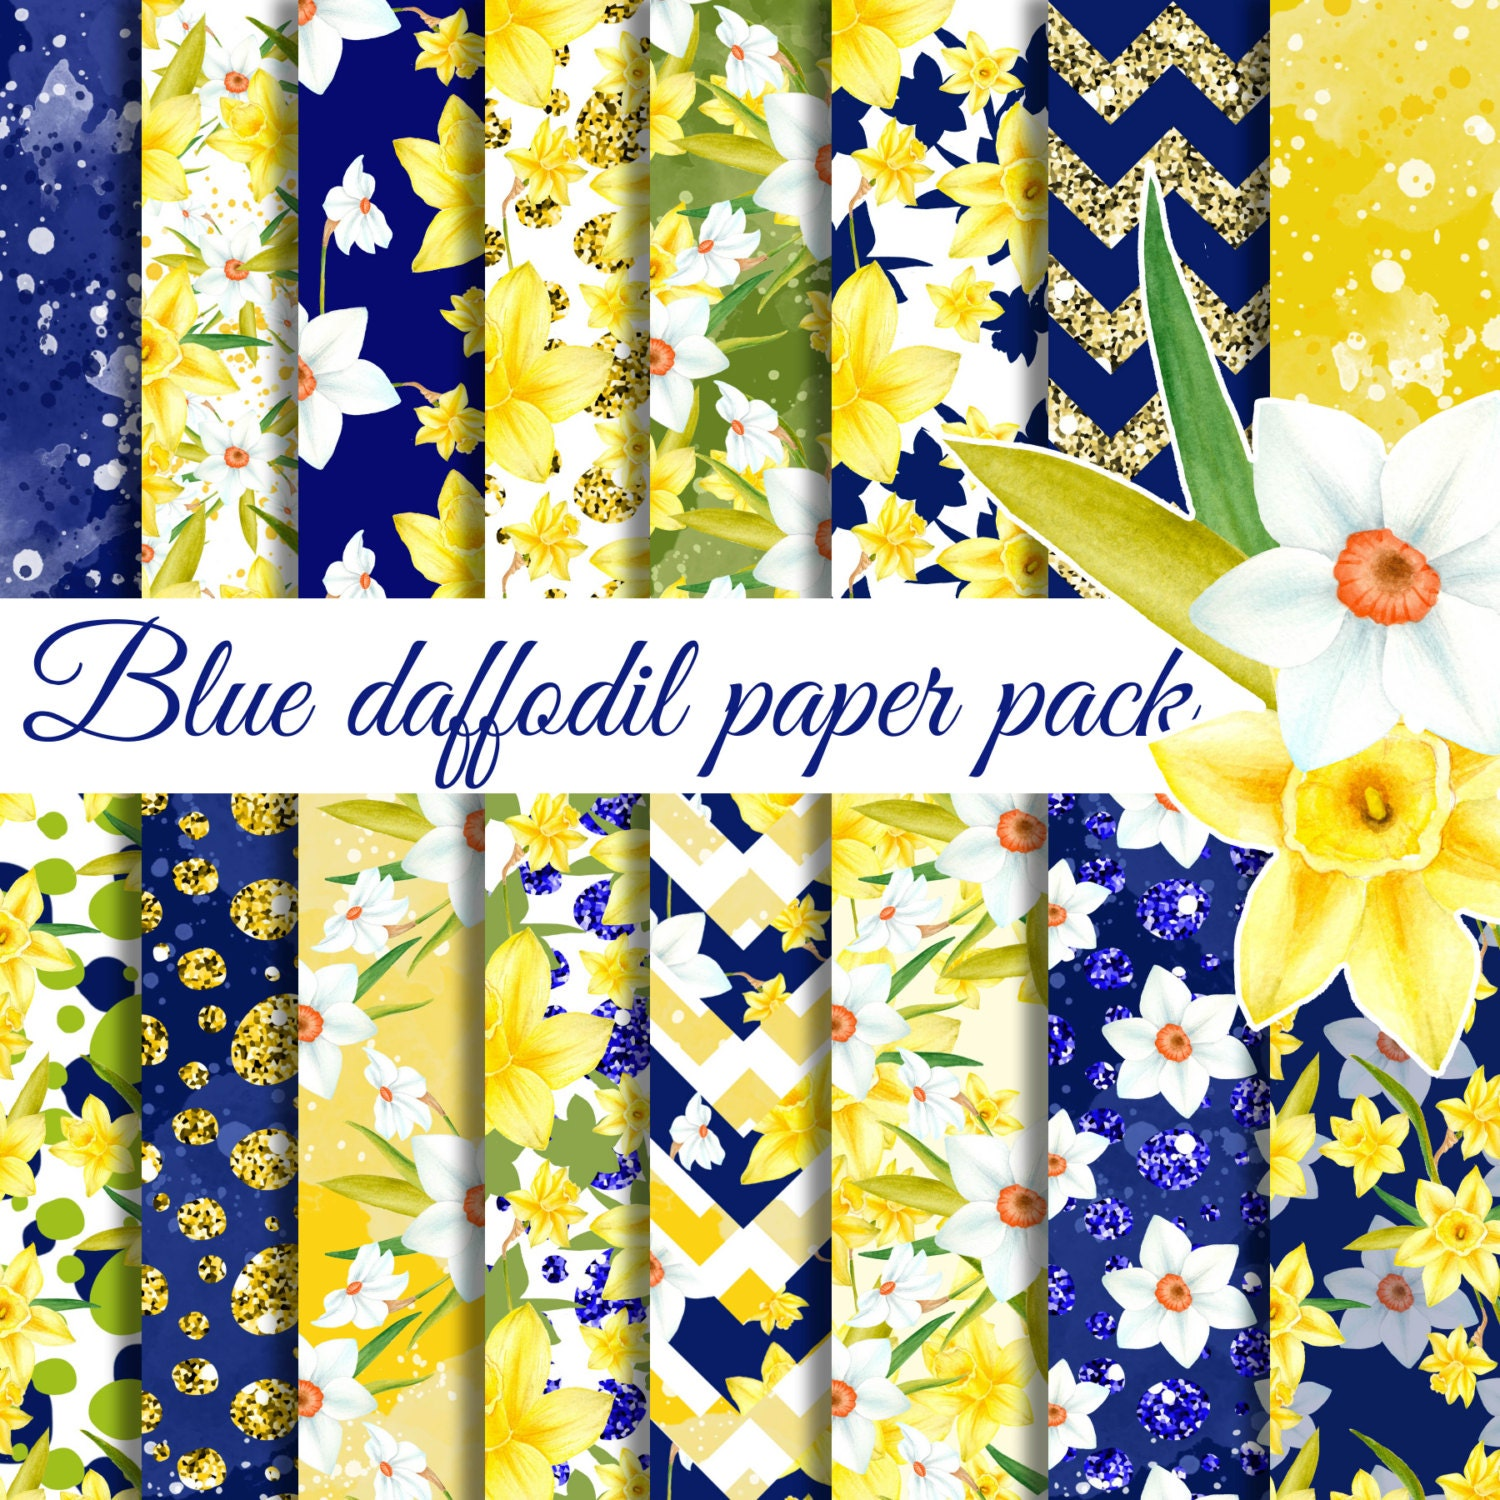 How to scrapbook with glitter paper - This Is A Digital File